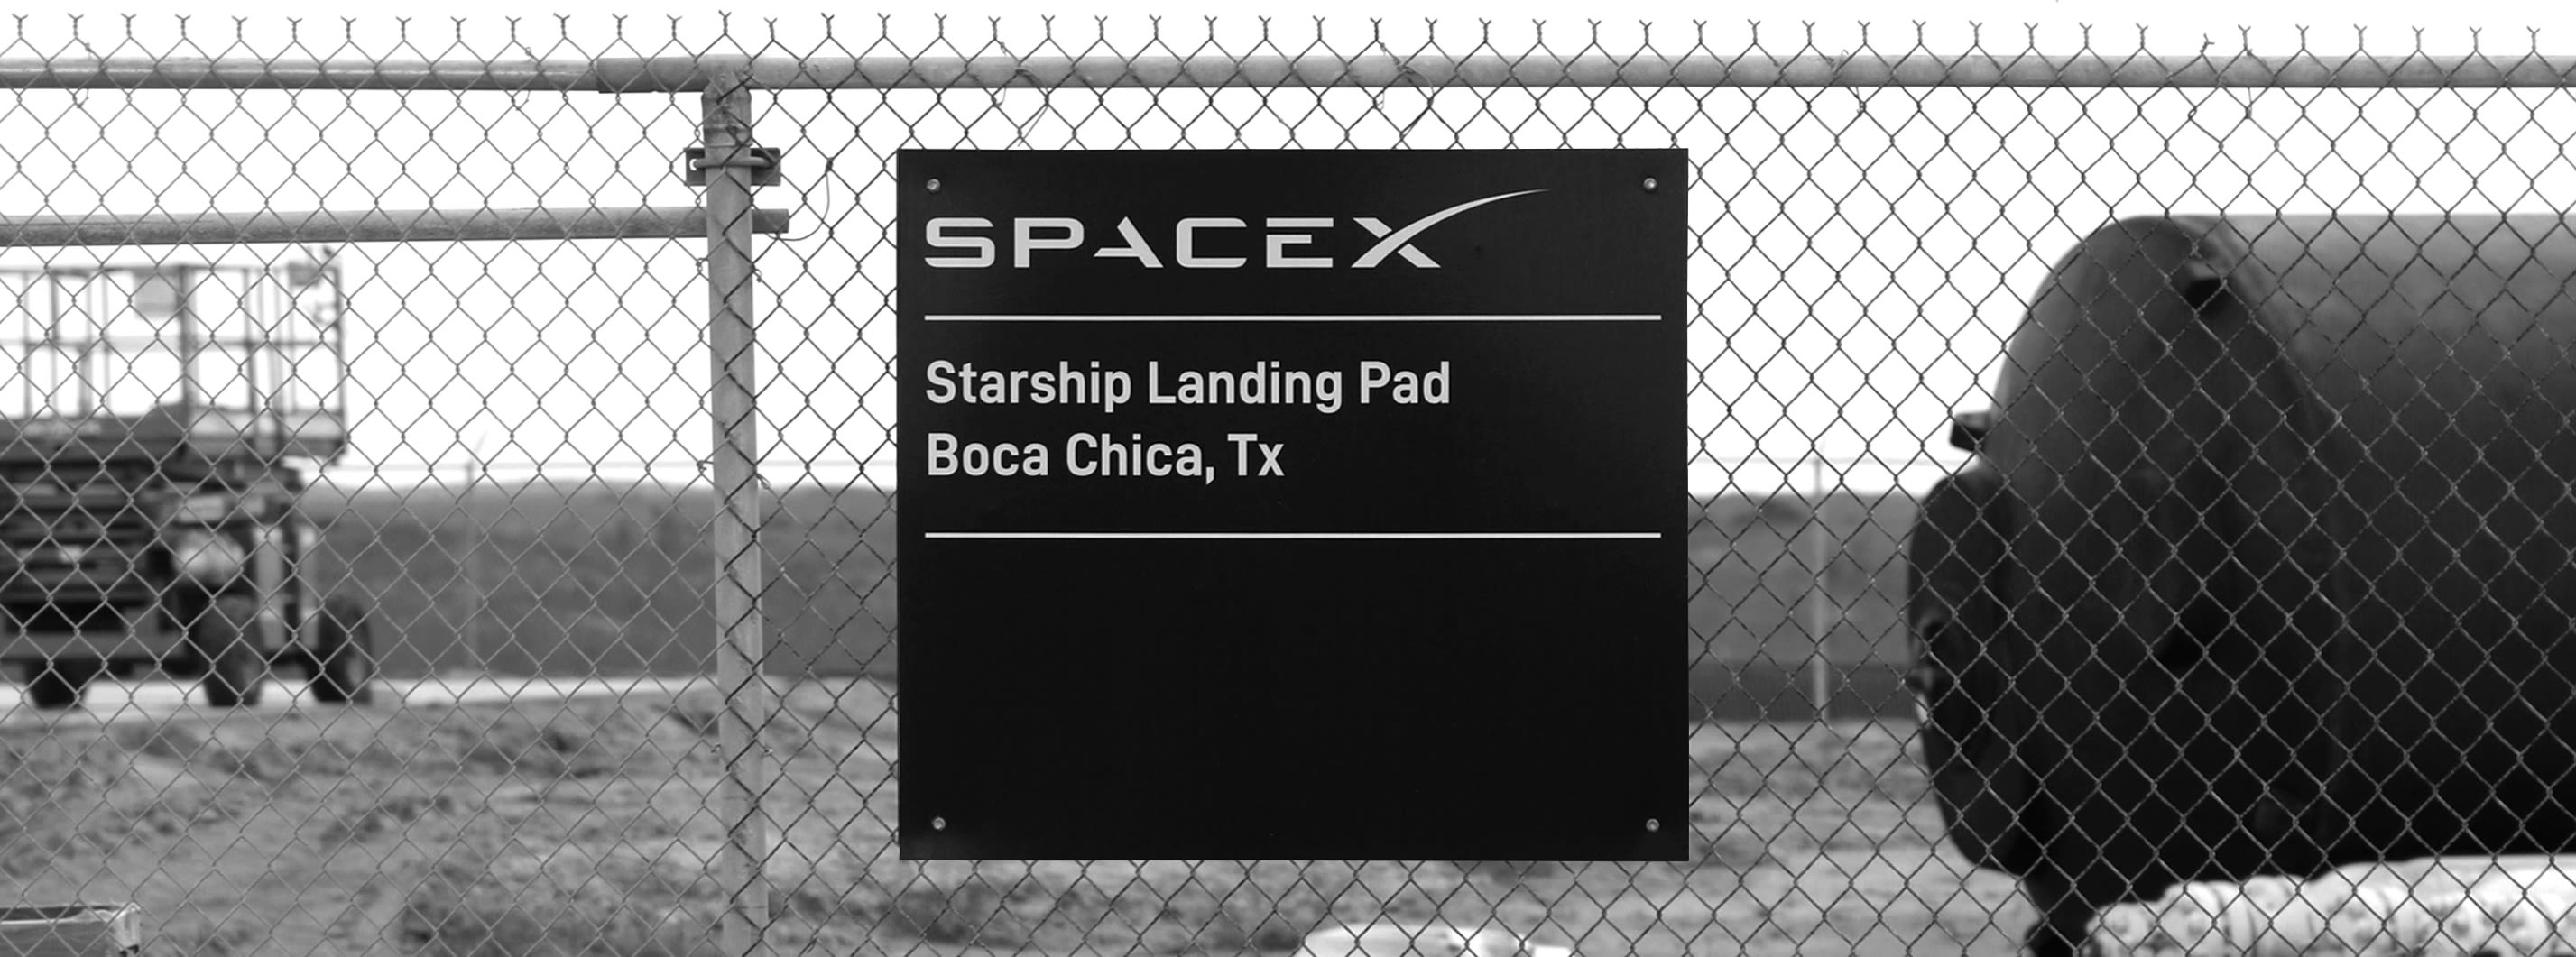 The Road to Mars Passes Through Boca Chica